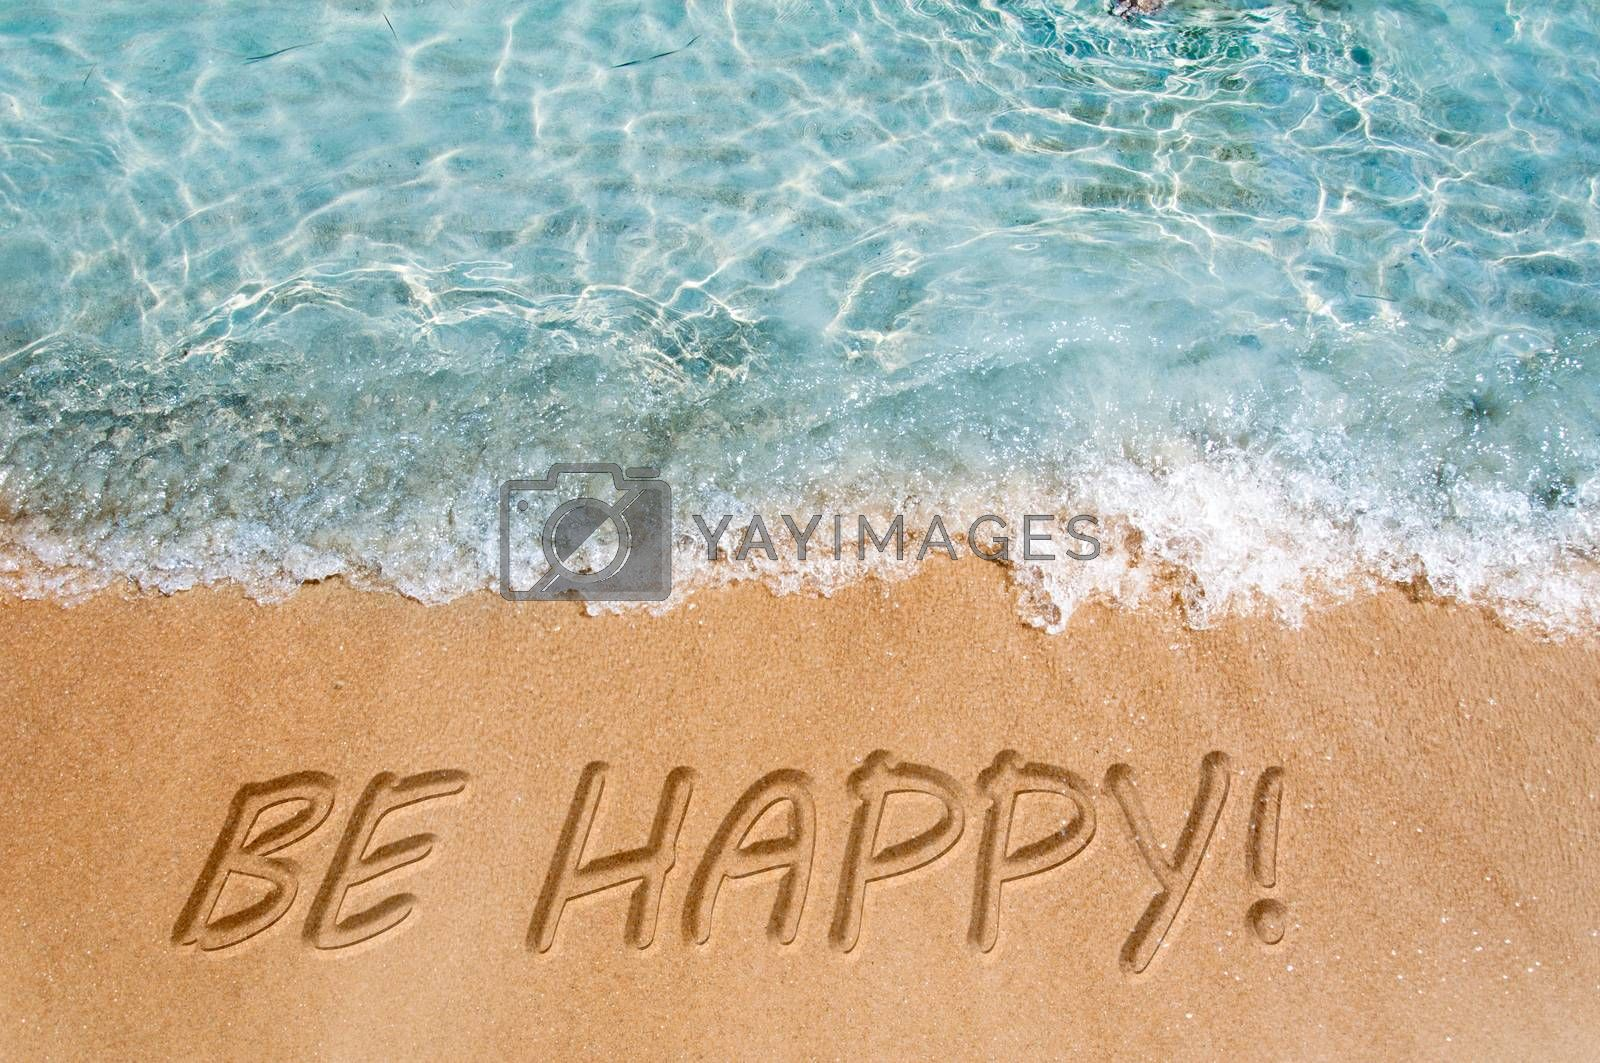 Be happy word sign on the beach sand